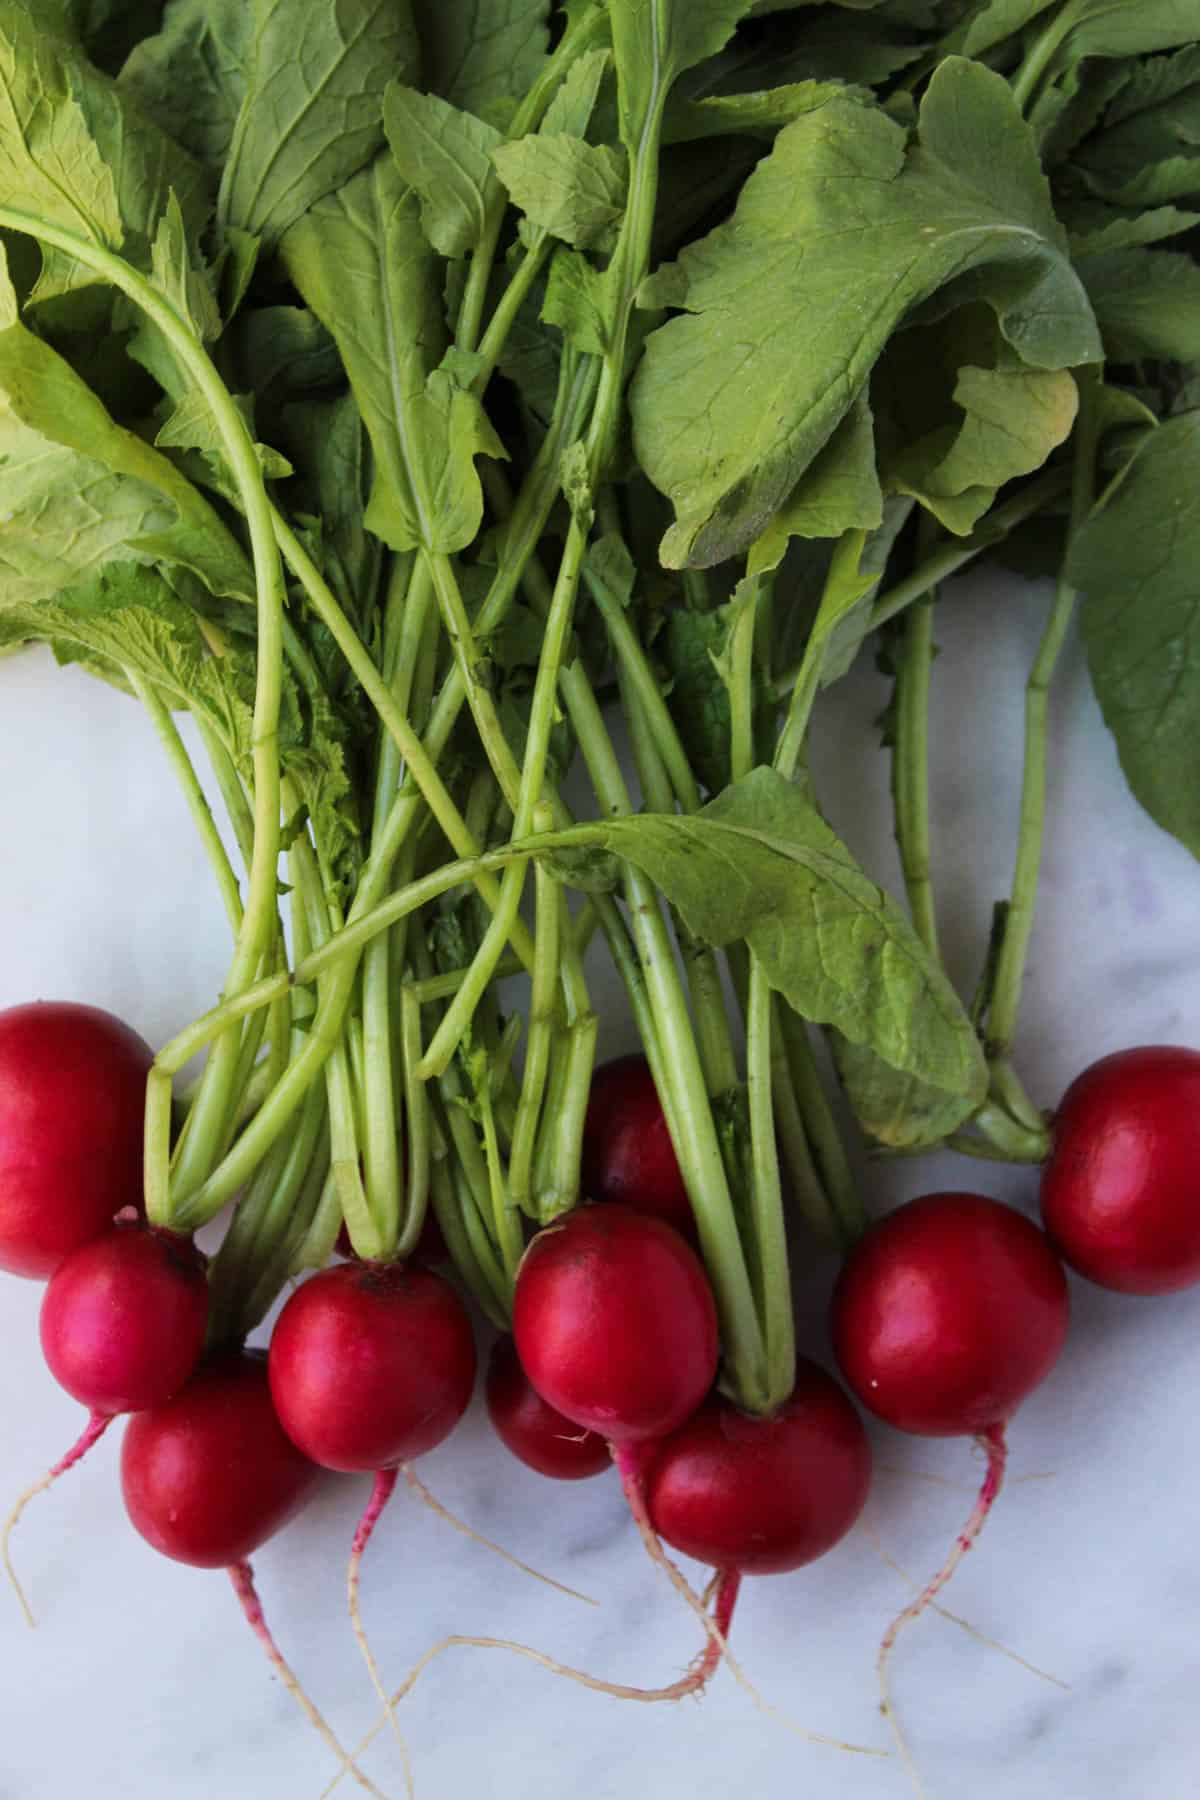 A bunch of radishes and their stems on a white counter top.